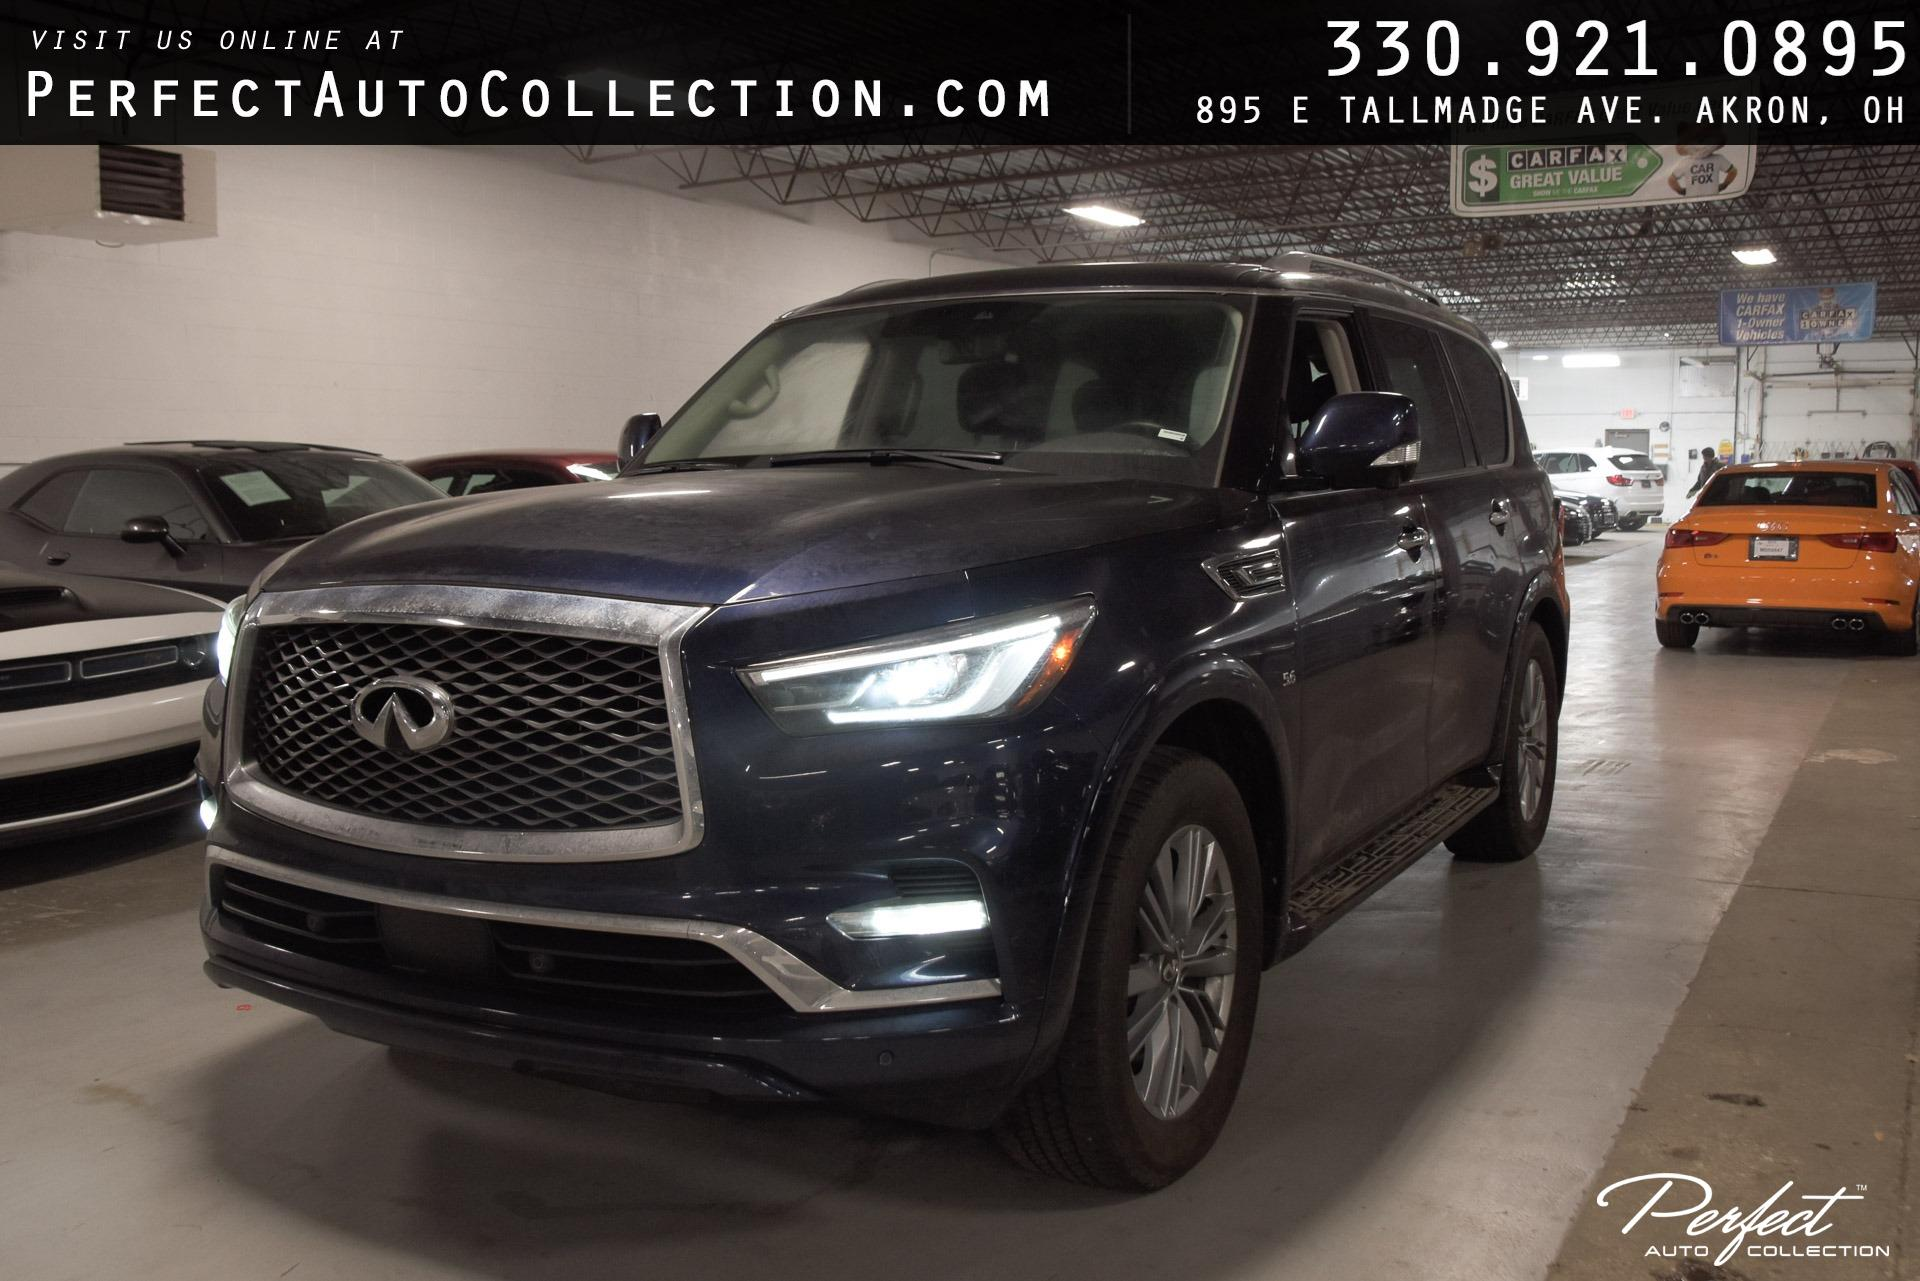 Used 2020 INFINITI QX80 Luxe for sale $51,995 at Perfect Auto Collection in Akron OH 44310 1